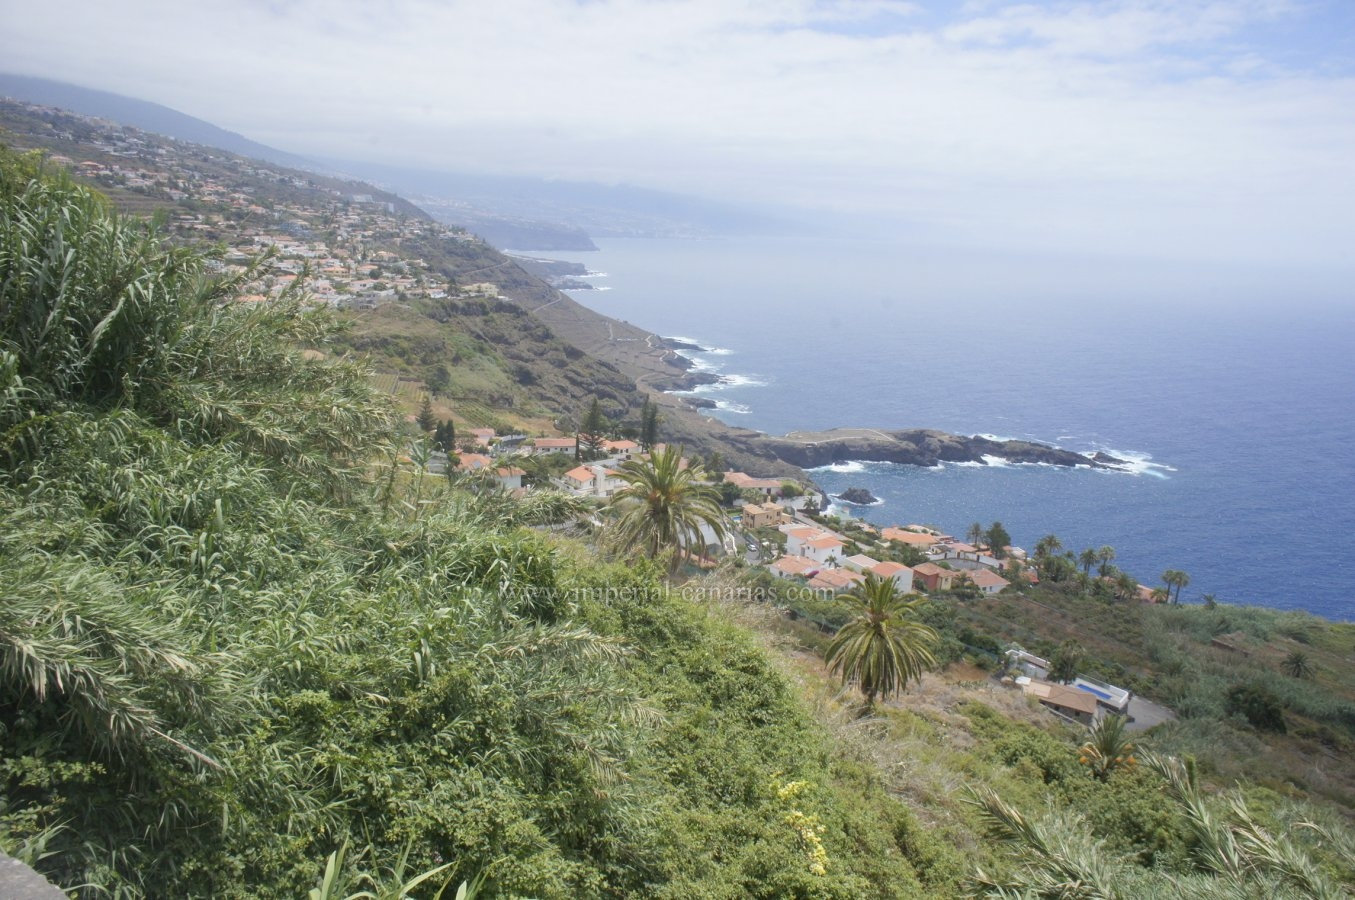 Finca with spectacular views of the entire north coast. Gallery water.